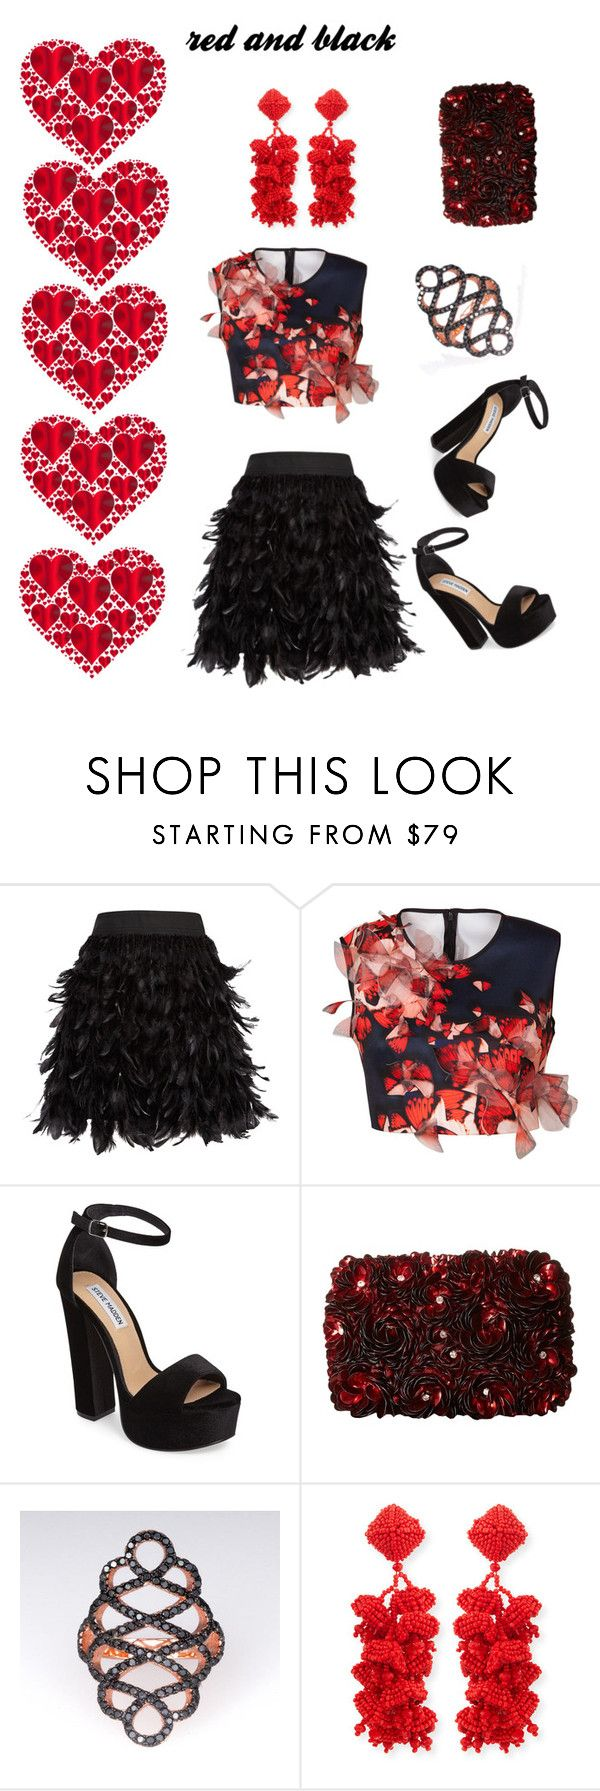 """""""red and black"""" by tonhr ❤ liked on Polyvore featuring Alice + Olivia, Clover Canyon, Steve Madden and NOIR Sachin + Babi"""